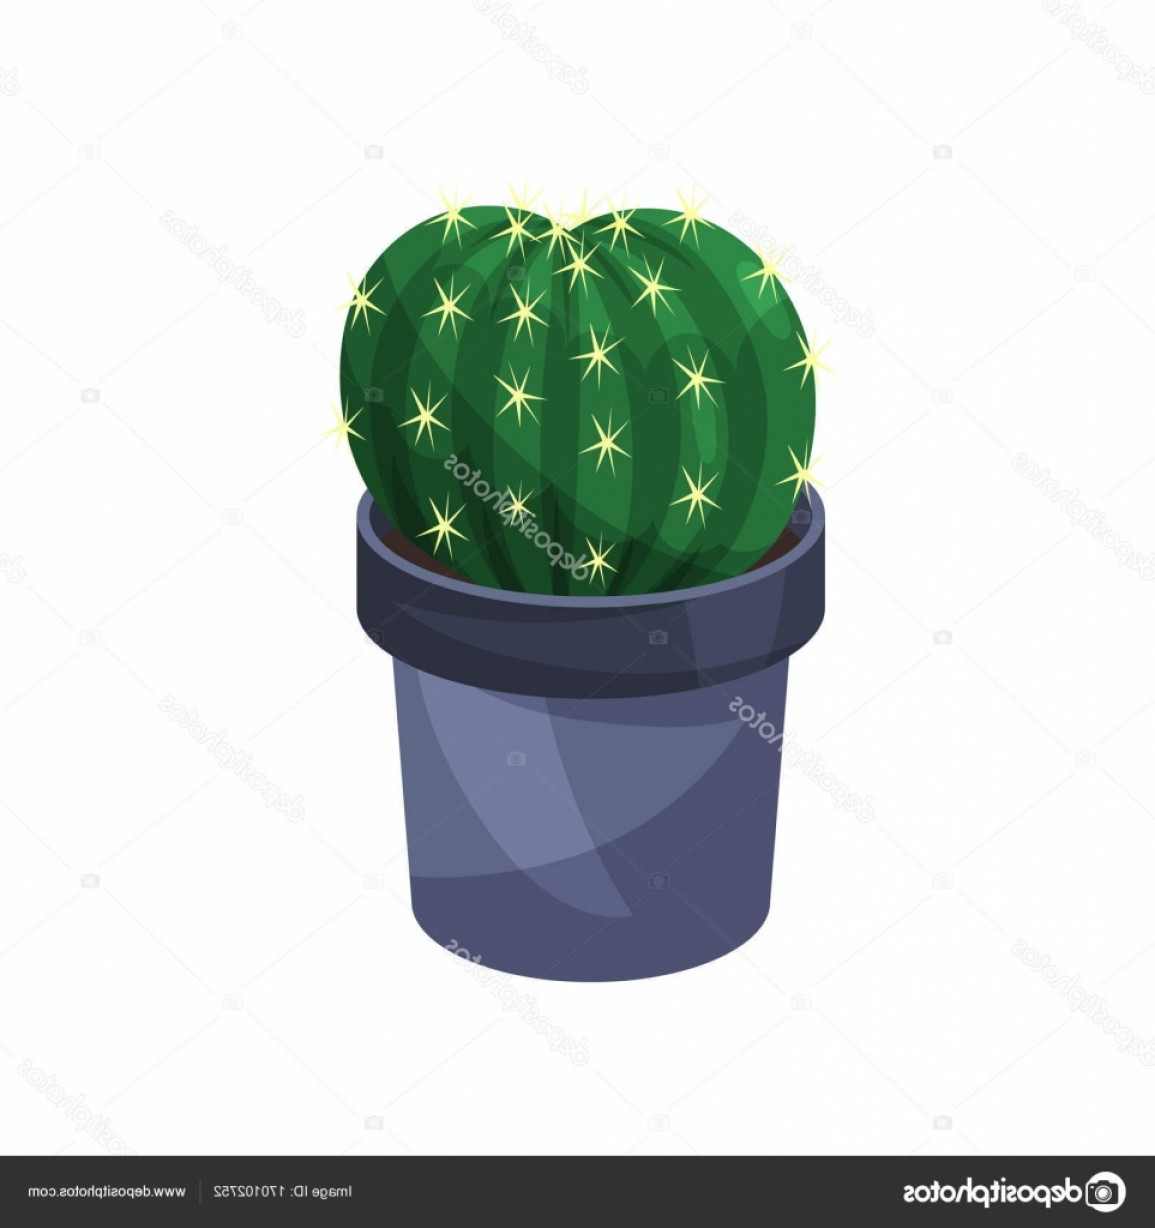 Potted Cactus Plant Vector: Stock Illustration Cactus Houseplant Potted Plant Vector